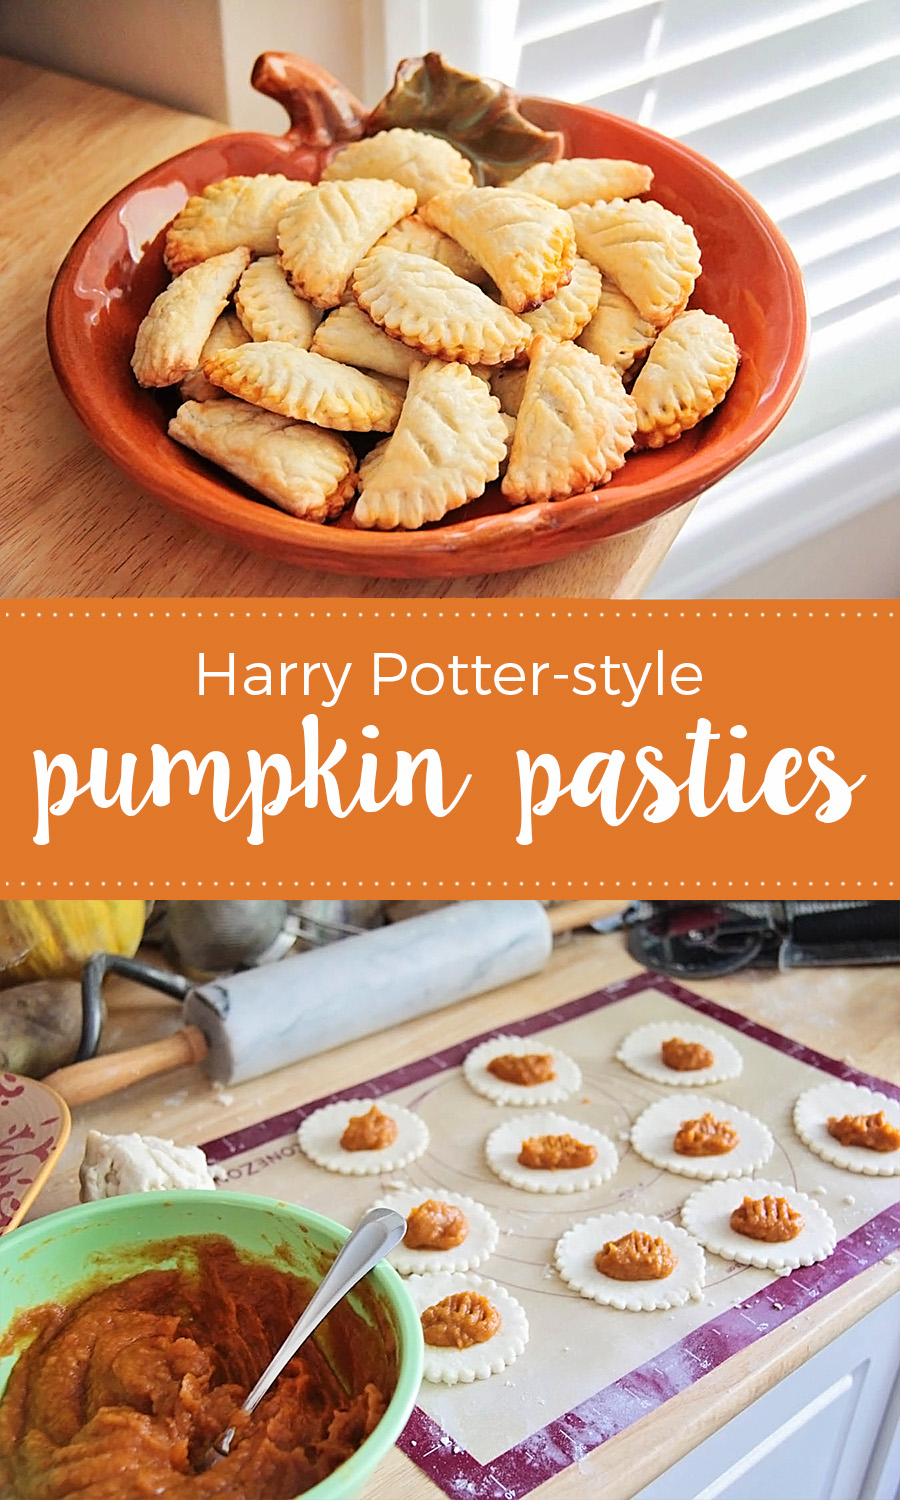 These delicious and sweet Harry Potter-style pumpkin pasties are so easy to make at home!